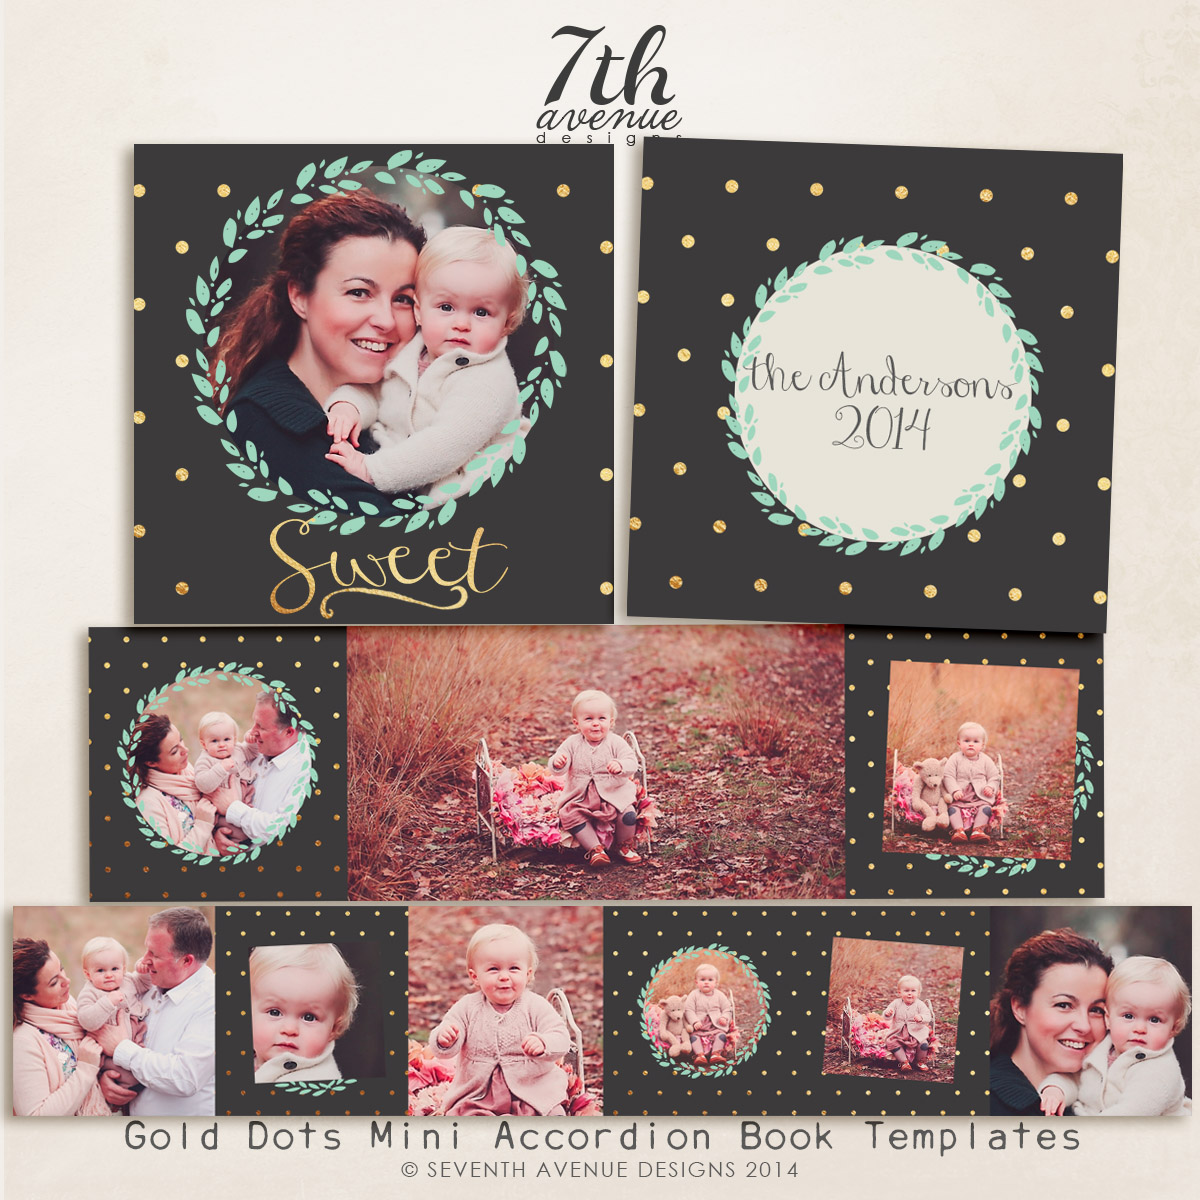 Gold Dots 3x3 Accordion book templates